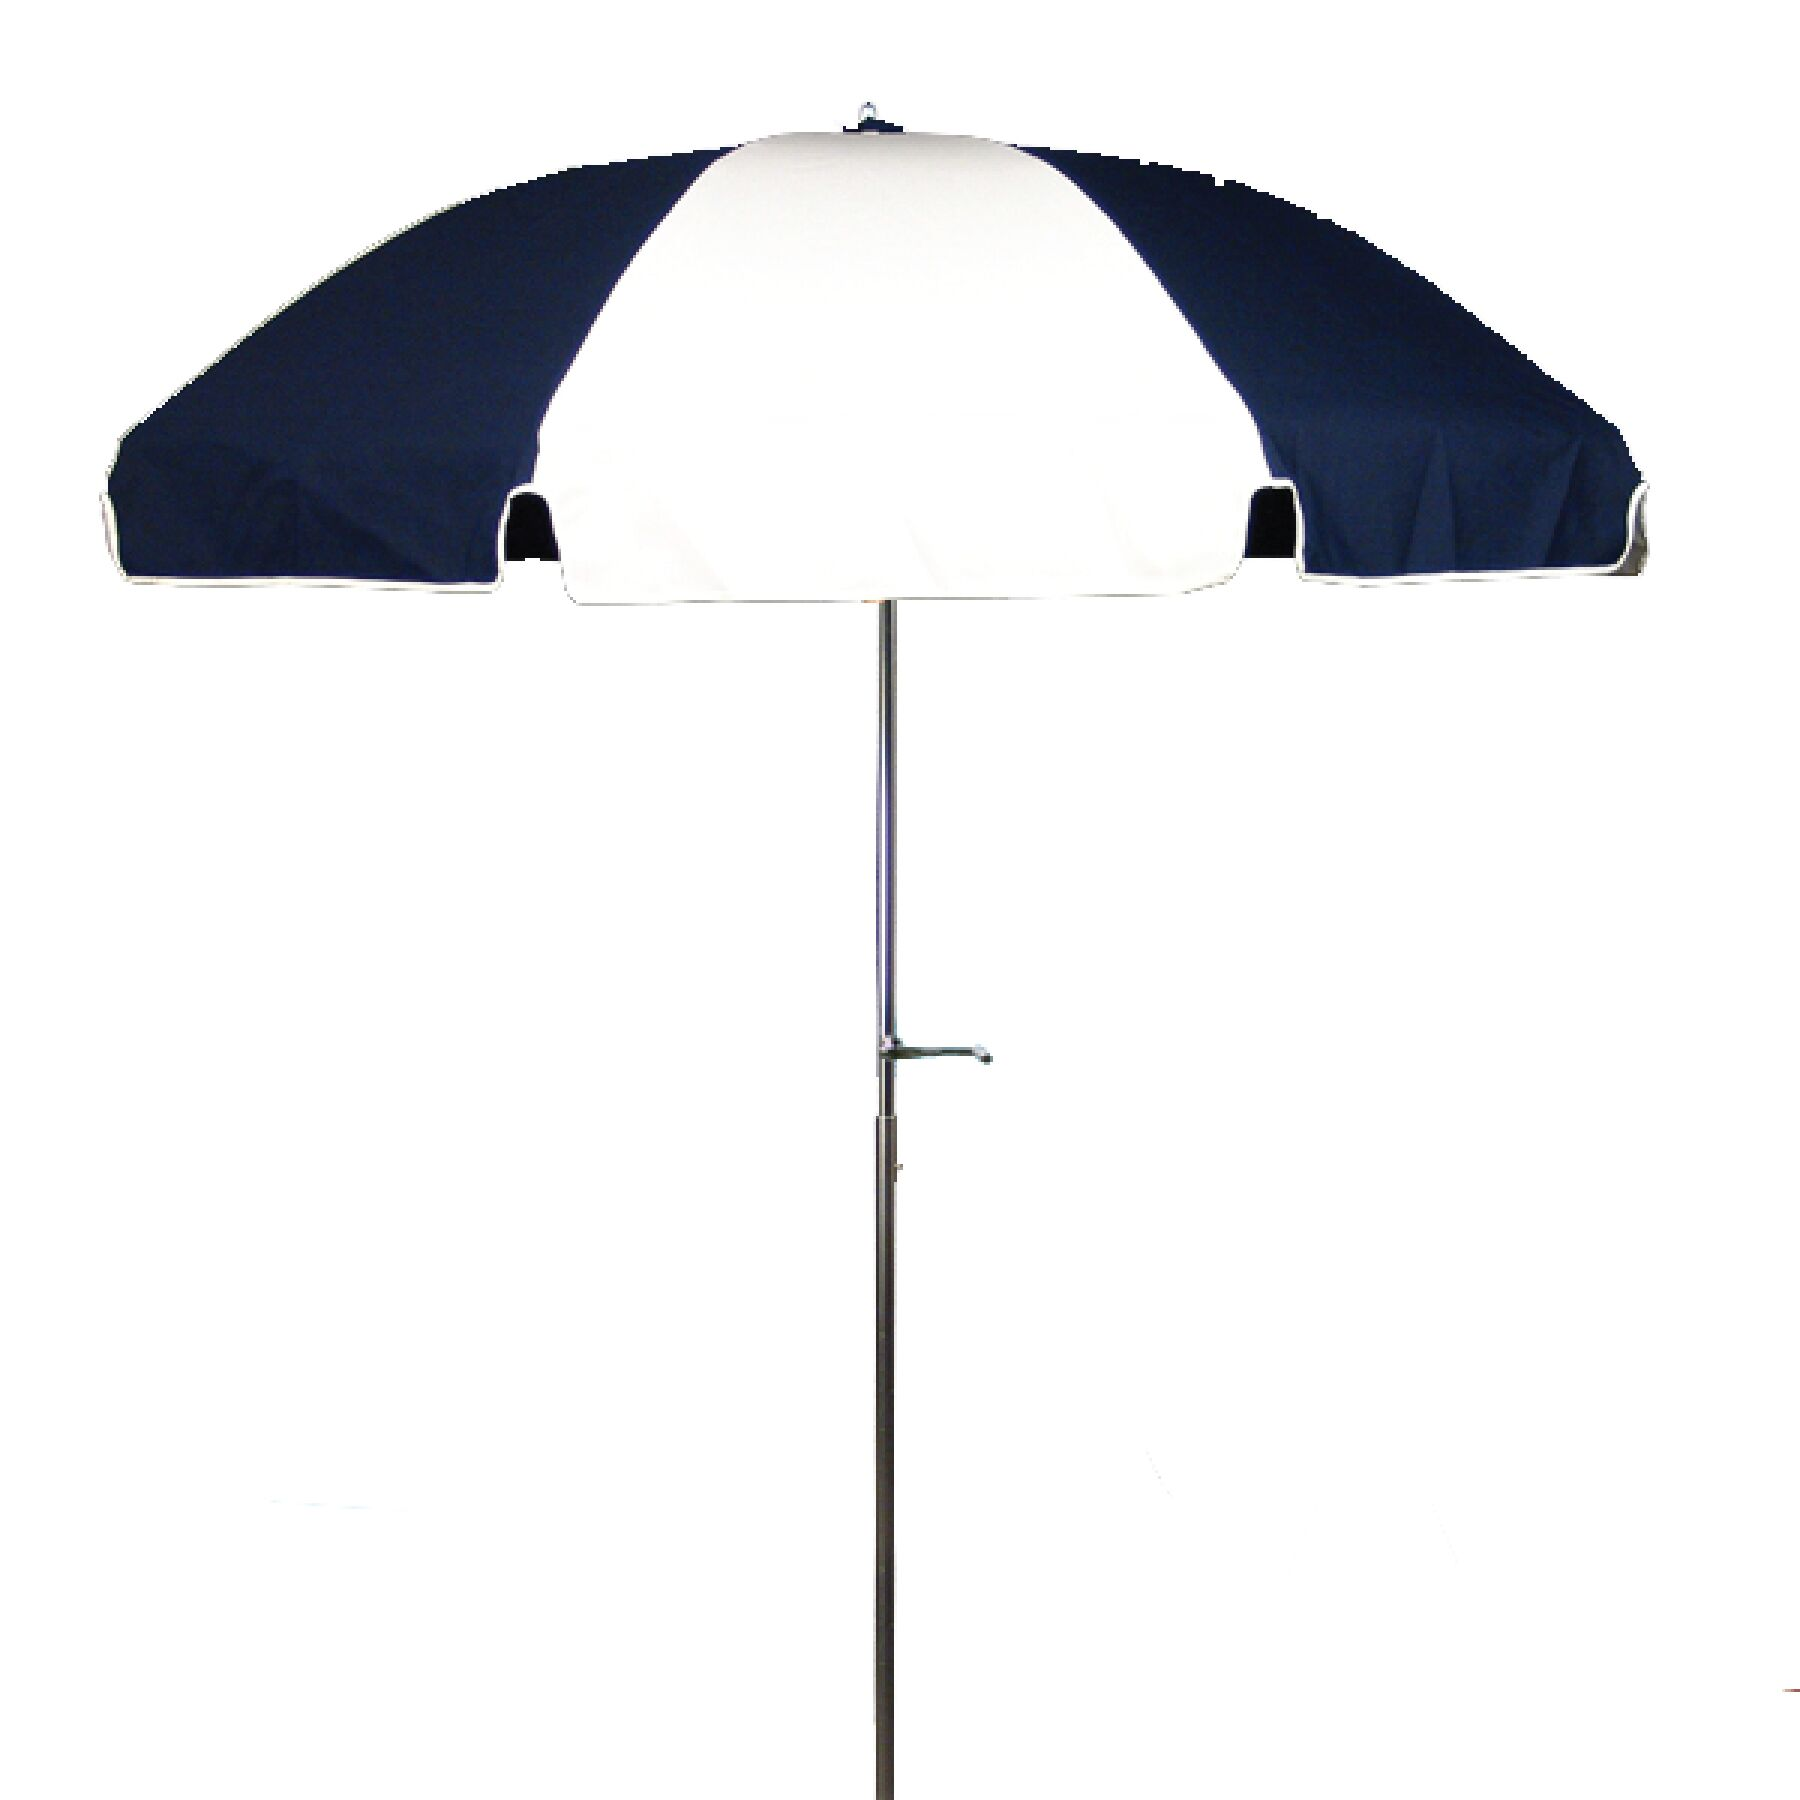 7.5' Beach Umbrella Fabric: Navy Blue and White